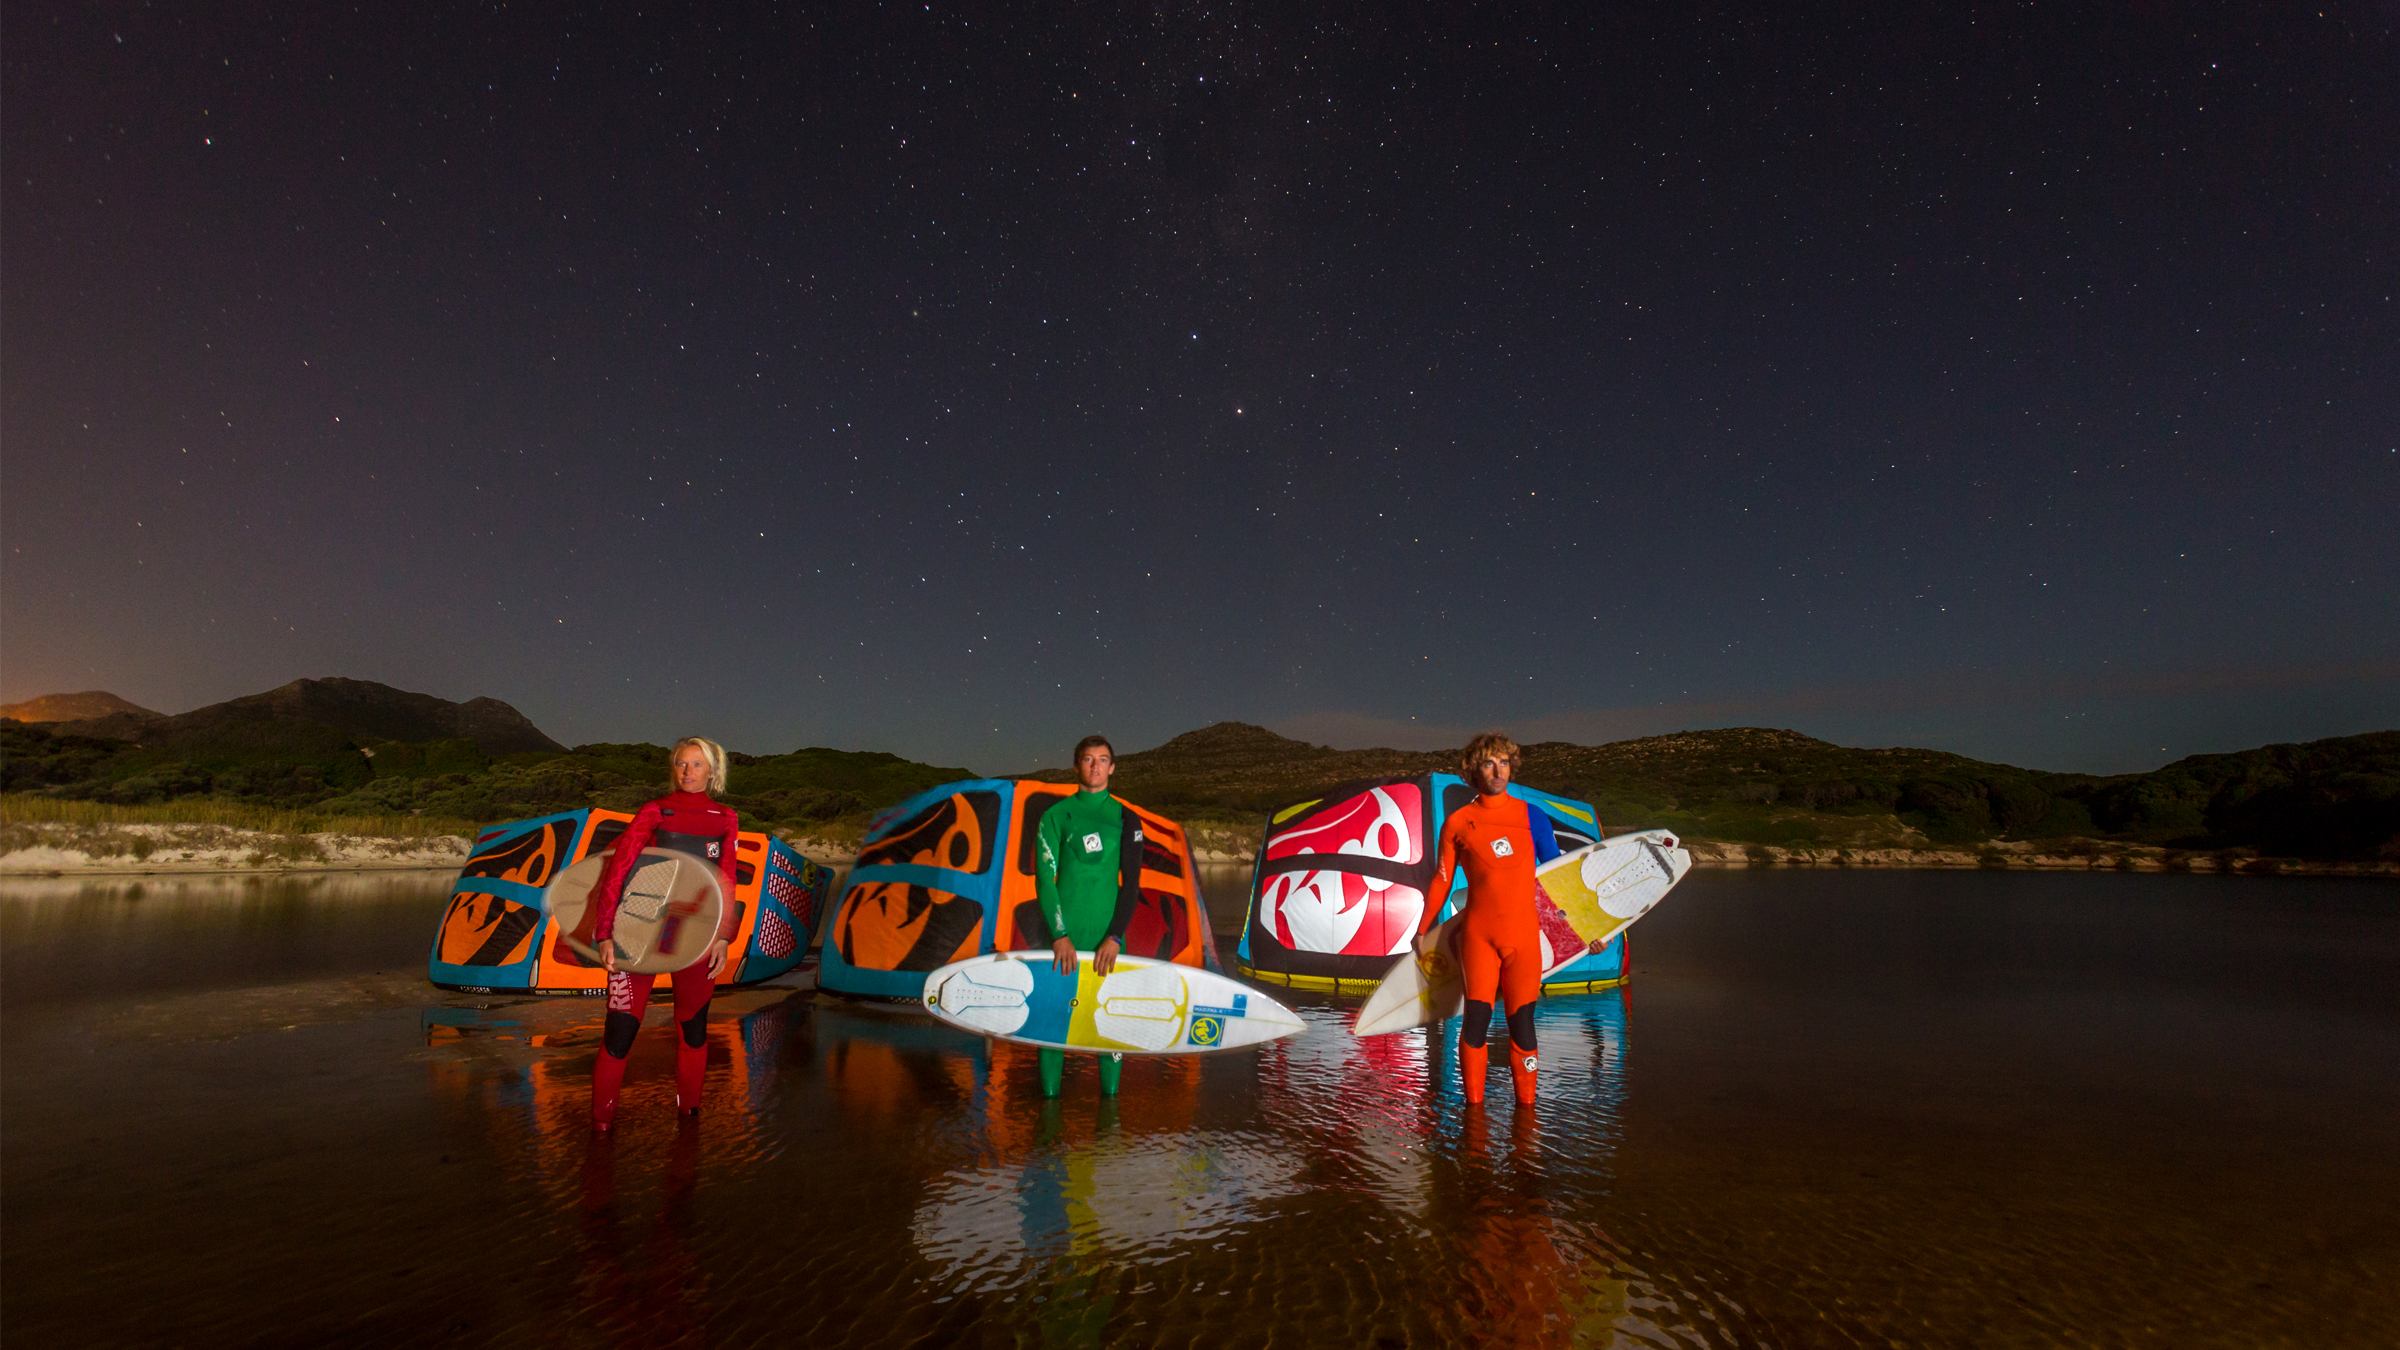 kitesurf wallpaper image - RRD wave trio looking at the stars with their 2015 Religion kites - Abel Lago and Kari Schibevaag - kitesurfing - in resolution: High Definition - HD 16:9 2400 X 1350